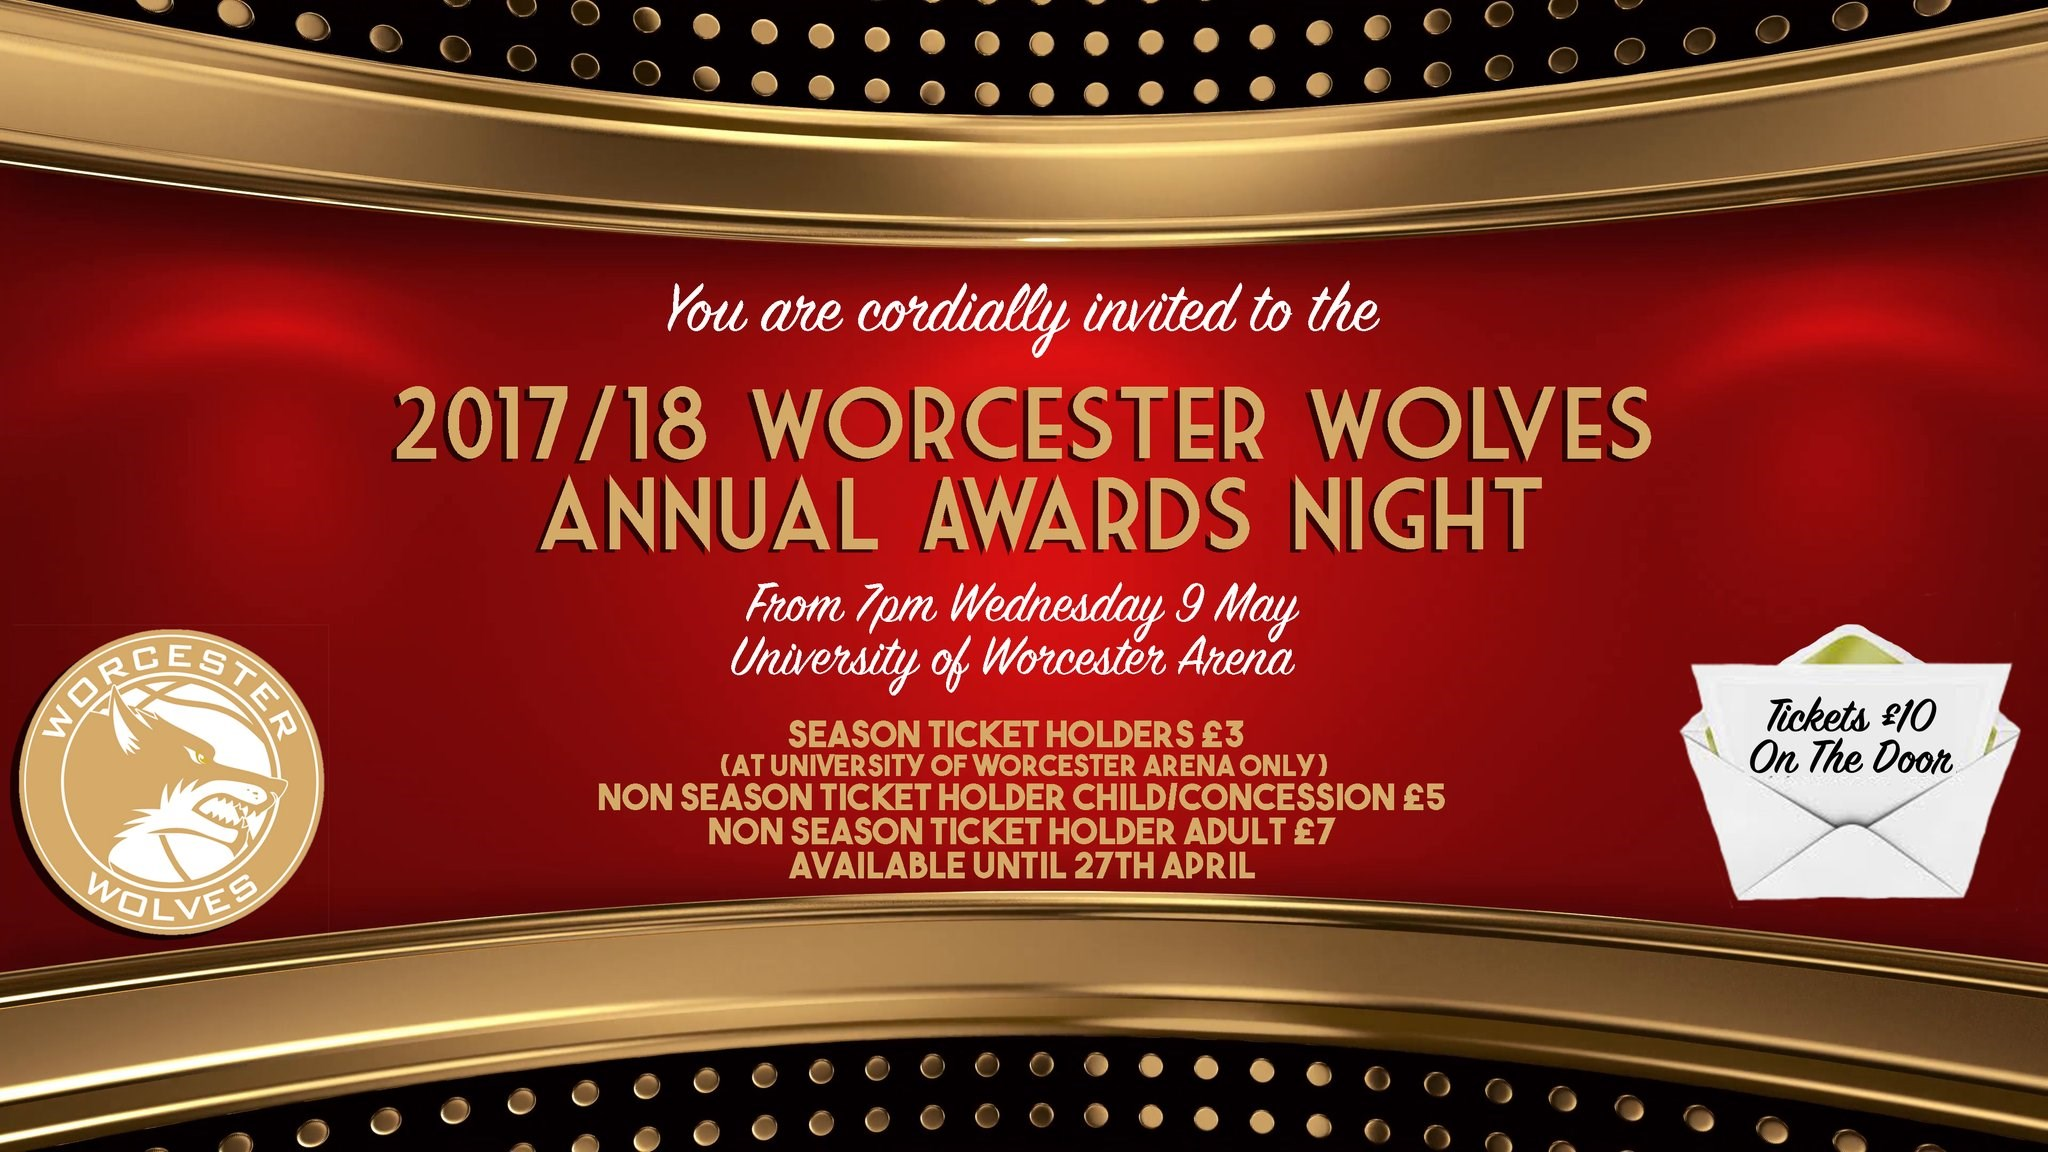 Worcester Wolves 2018 Awards Night